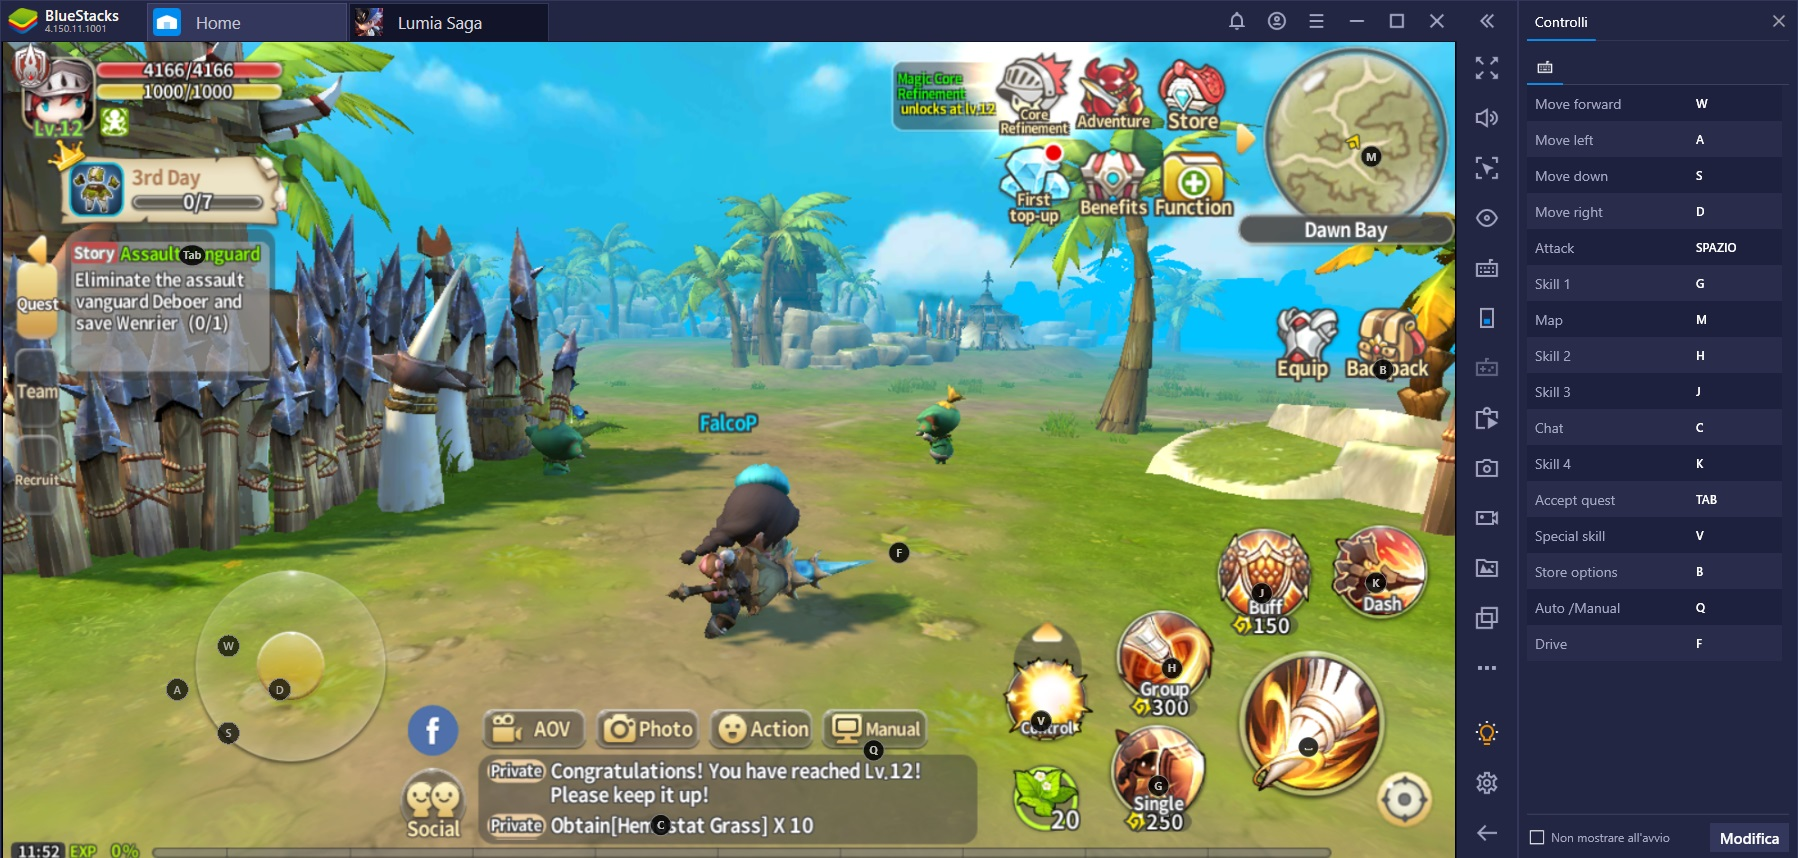 Gioca Lumia Saga su PC con Bluestacks